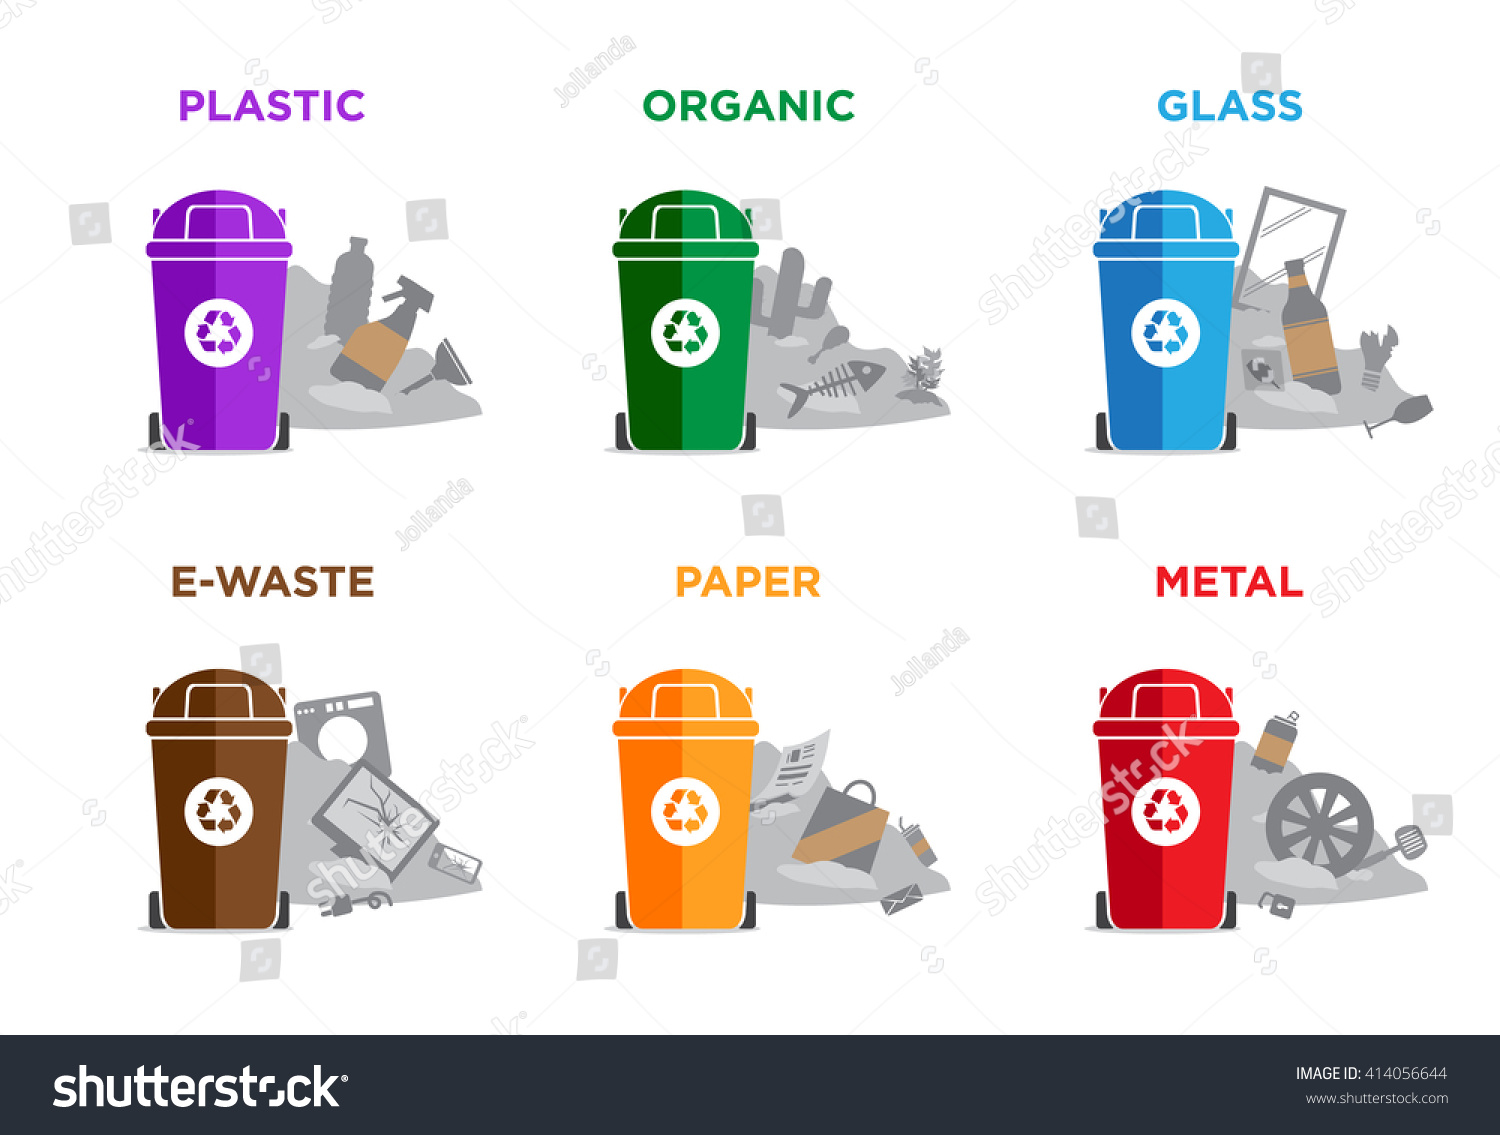 proper waste segregation essay Proper waste management is not just doings of government for us but we are also assigned to do it inside and outside our place for our safety  segregation of.